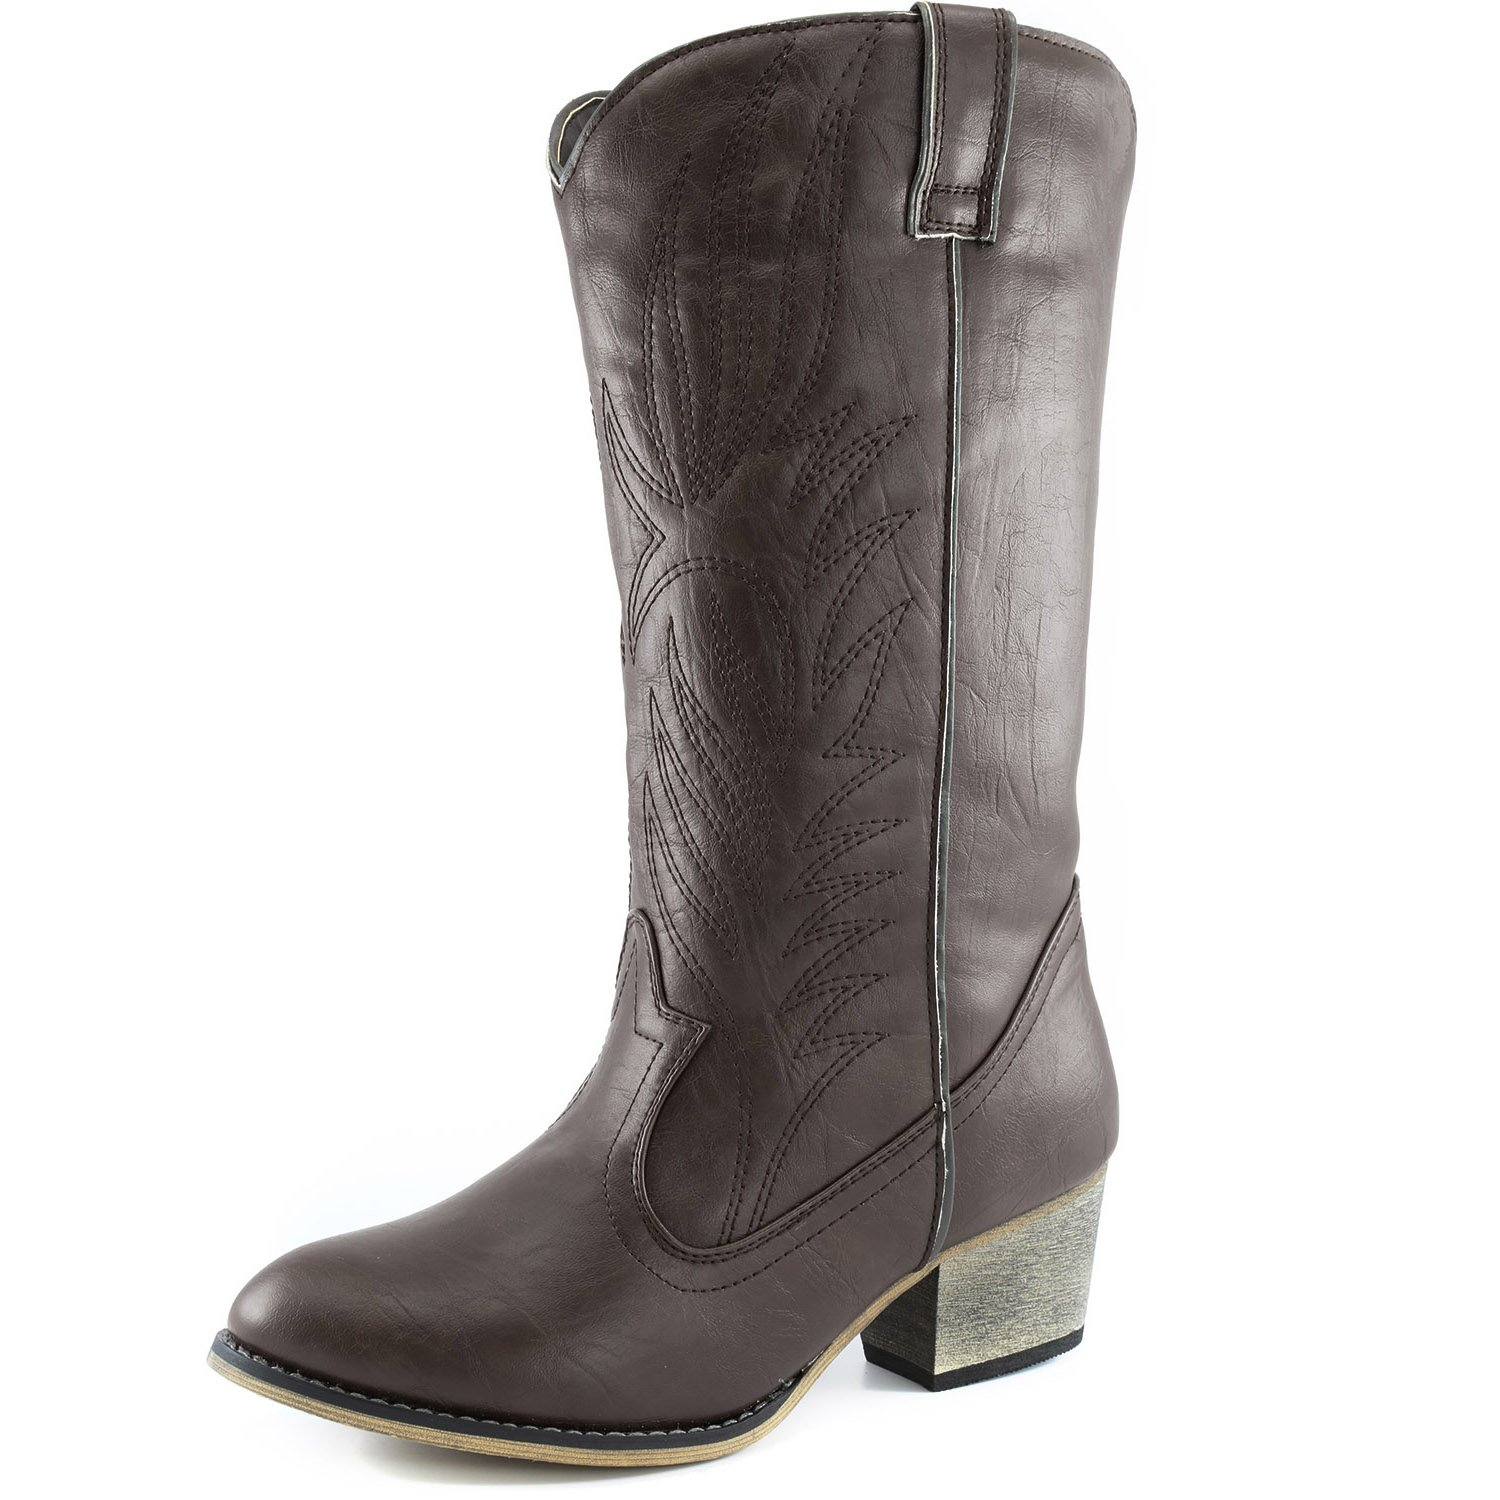 DailyShoes Womens Embroidered Legend Pointed Toe Pull up Zipper Mid Calf Western Cowboy Boots Knee High Boot